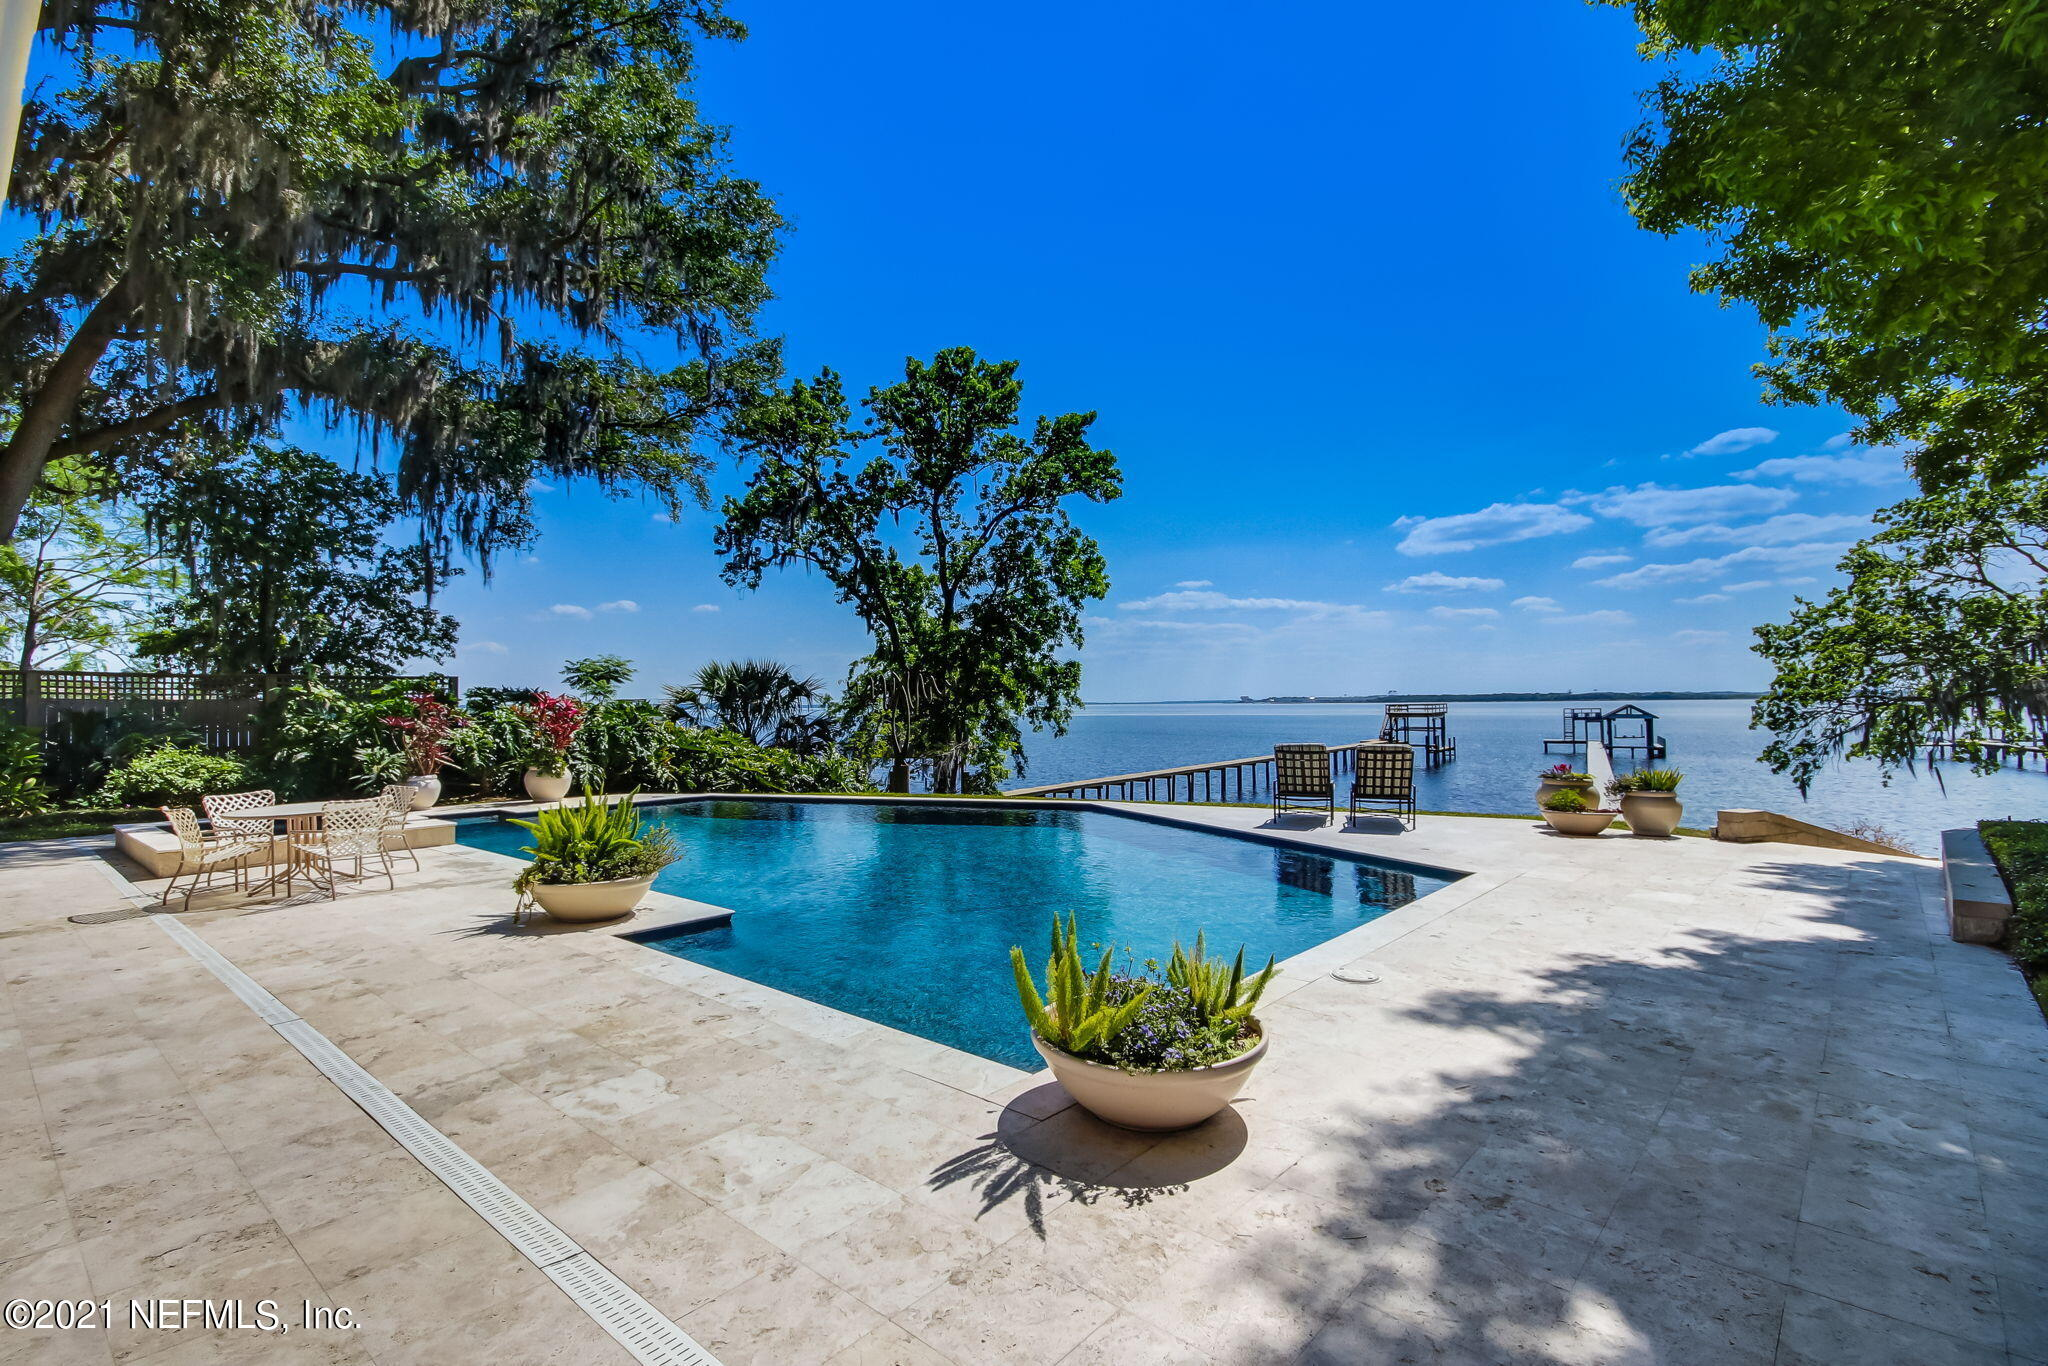 Stunning waterfront property located in the heart of Jacksonville, just minutes from the San Marco Square. Surrounded by lush landscaping and majestic mossy oaks, this contemporary cedar shake home is sure to wow the most discerning tastes. Over 4500 sq ft of thoughtfully curated space. Breathtaking views of the St. Johns River from every room! Chef's kitchen boasts Subzero and Thermador appliances as well as a beautiful, spacious island. Dine alfresco with a glass from your wine cellar, next to the sparkling pool. Built in entertainment for the whole family, including playground, ping pong. Then, hop on your 30' boat from your dock. Energy efficiency made possible by solar panels, foam insulation and 16 kv Generac generator. Luxurious North Florida living at its finest!